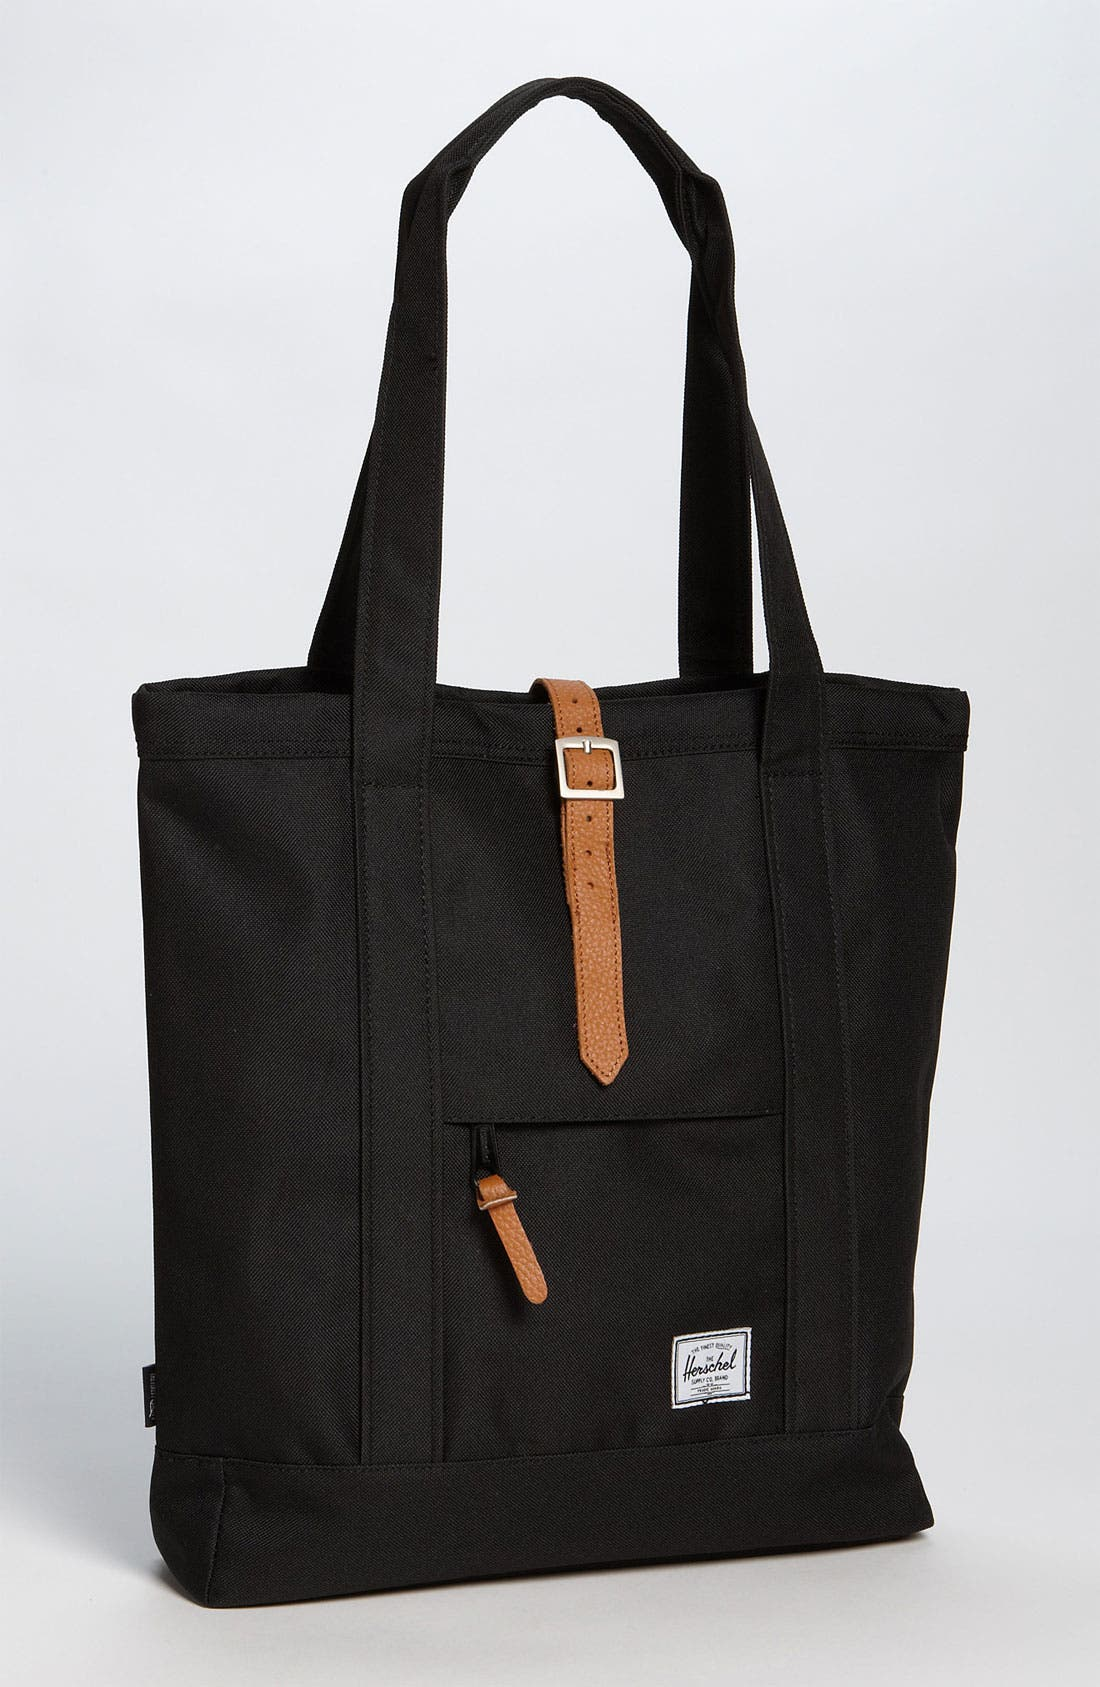 Alternate Image 1 Selected - Herschel Supply Co. 'Market' Tote